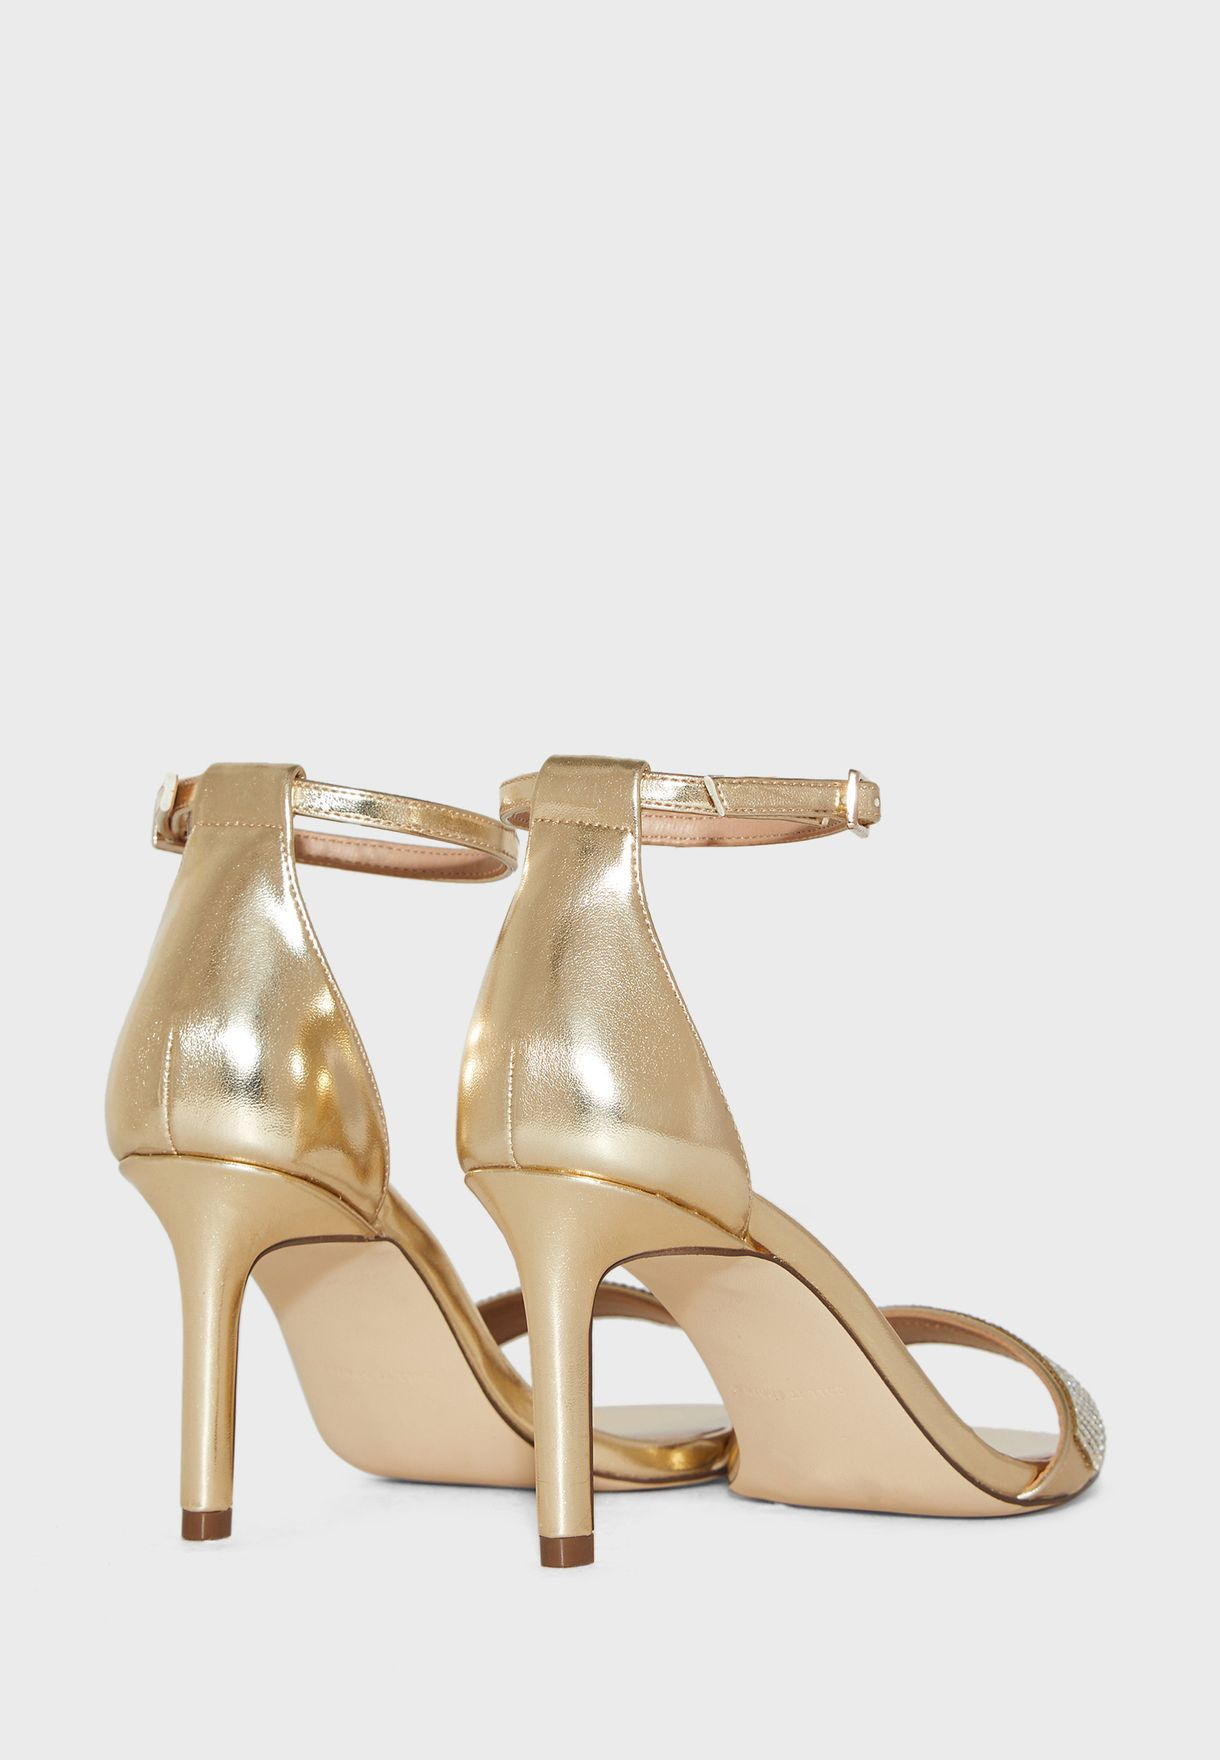 Kendraa Ankle Strap High Heel Sandal